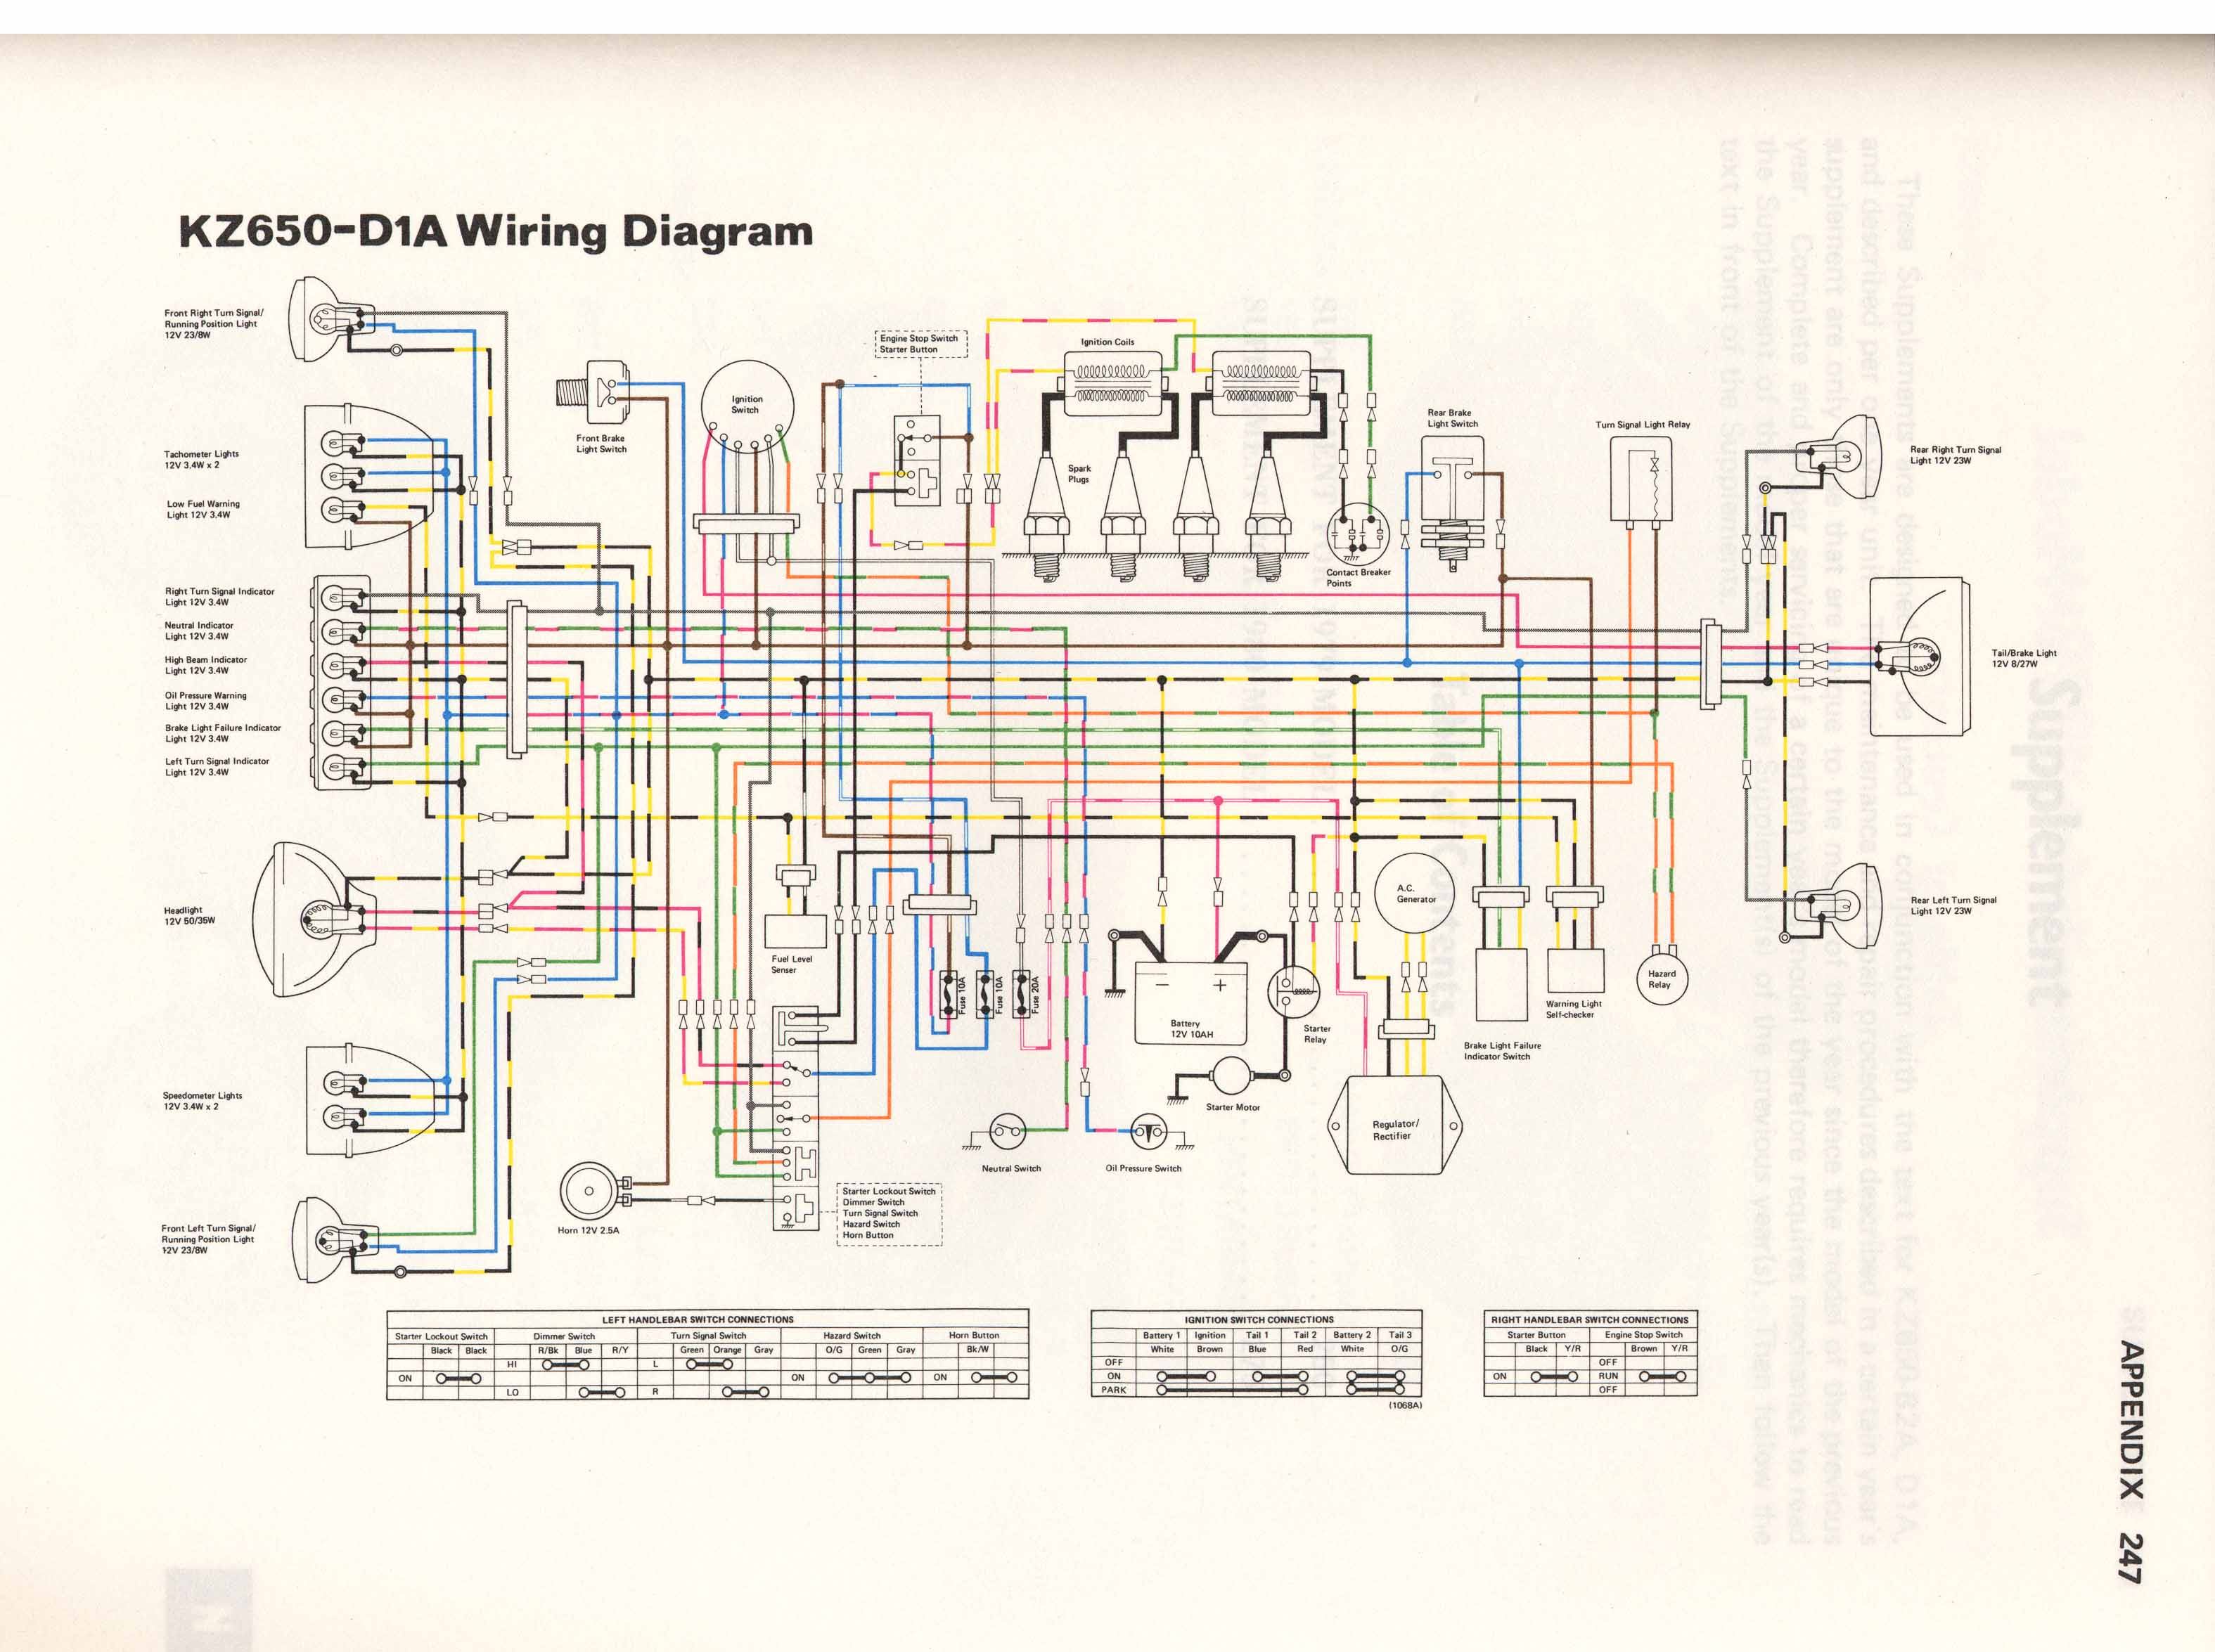 78 kz1000 b2 wiring schematic not lossing wiring diagram • 1977 kz650 wiring diagram simple wiring diagram rh 40 mara cujas de kz1000 custom 1978 kawasaki